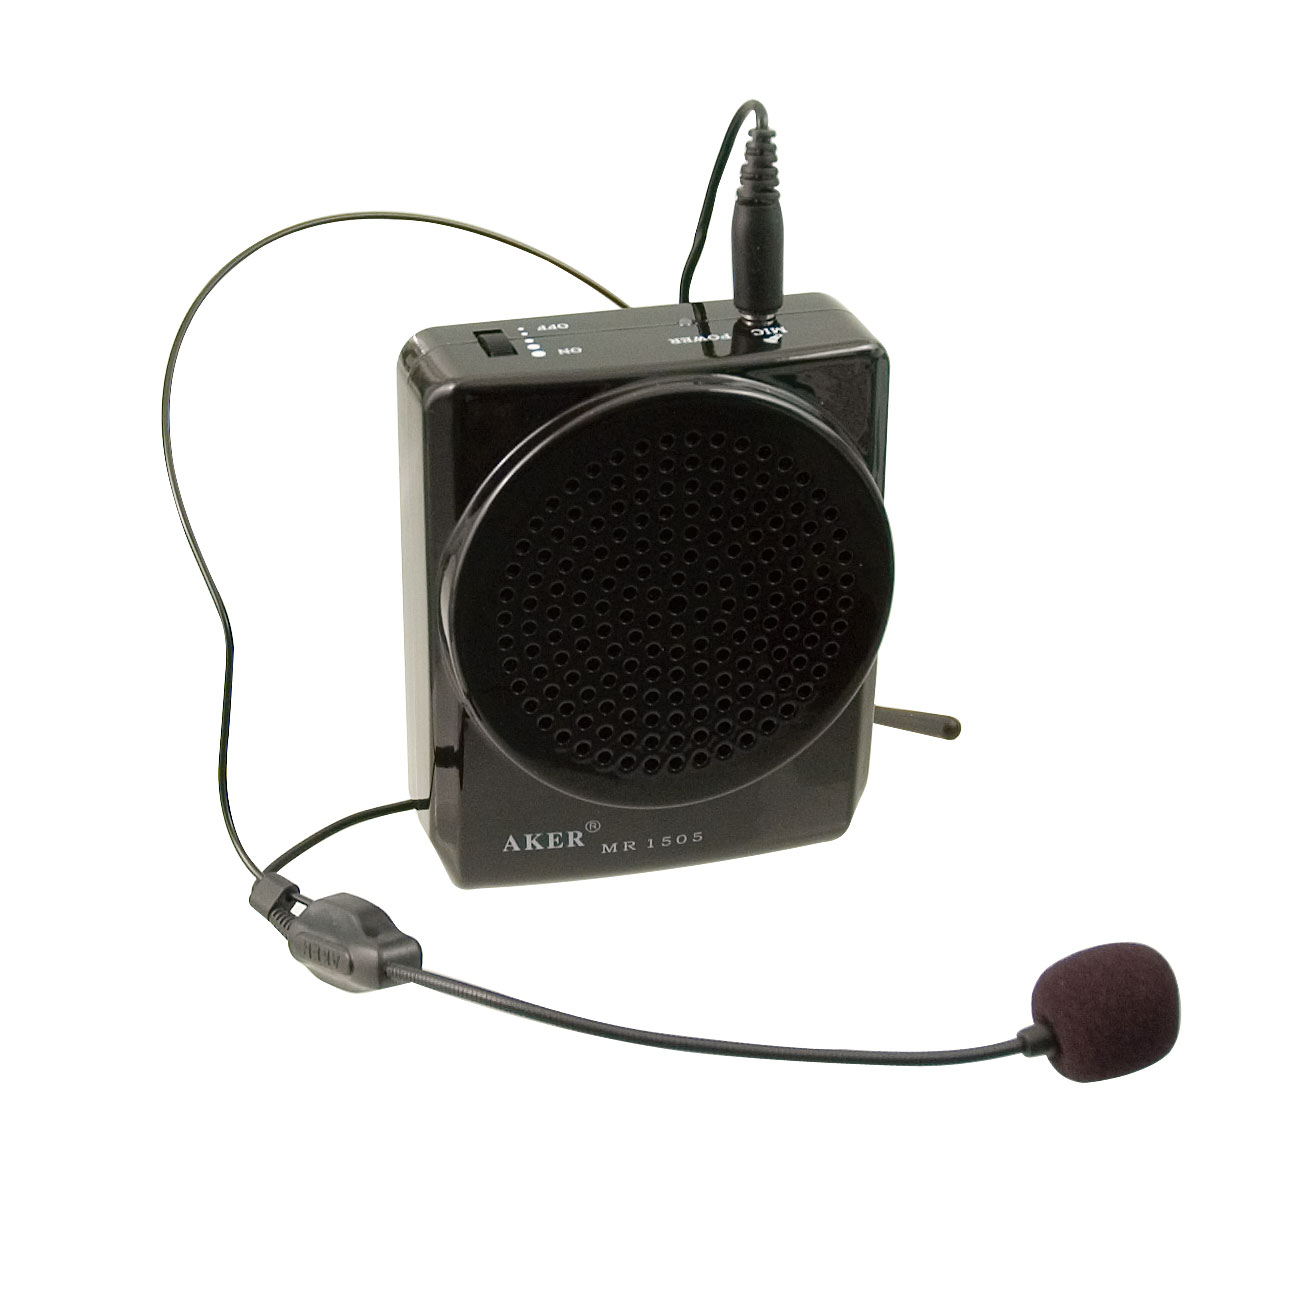 VoiceBooster 12 Watt Portable Voice Amplifier MR1505